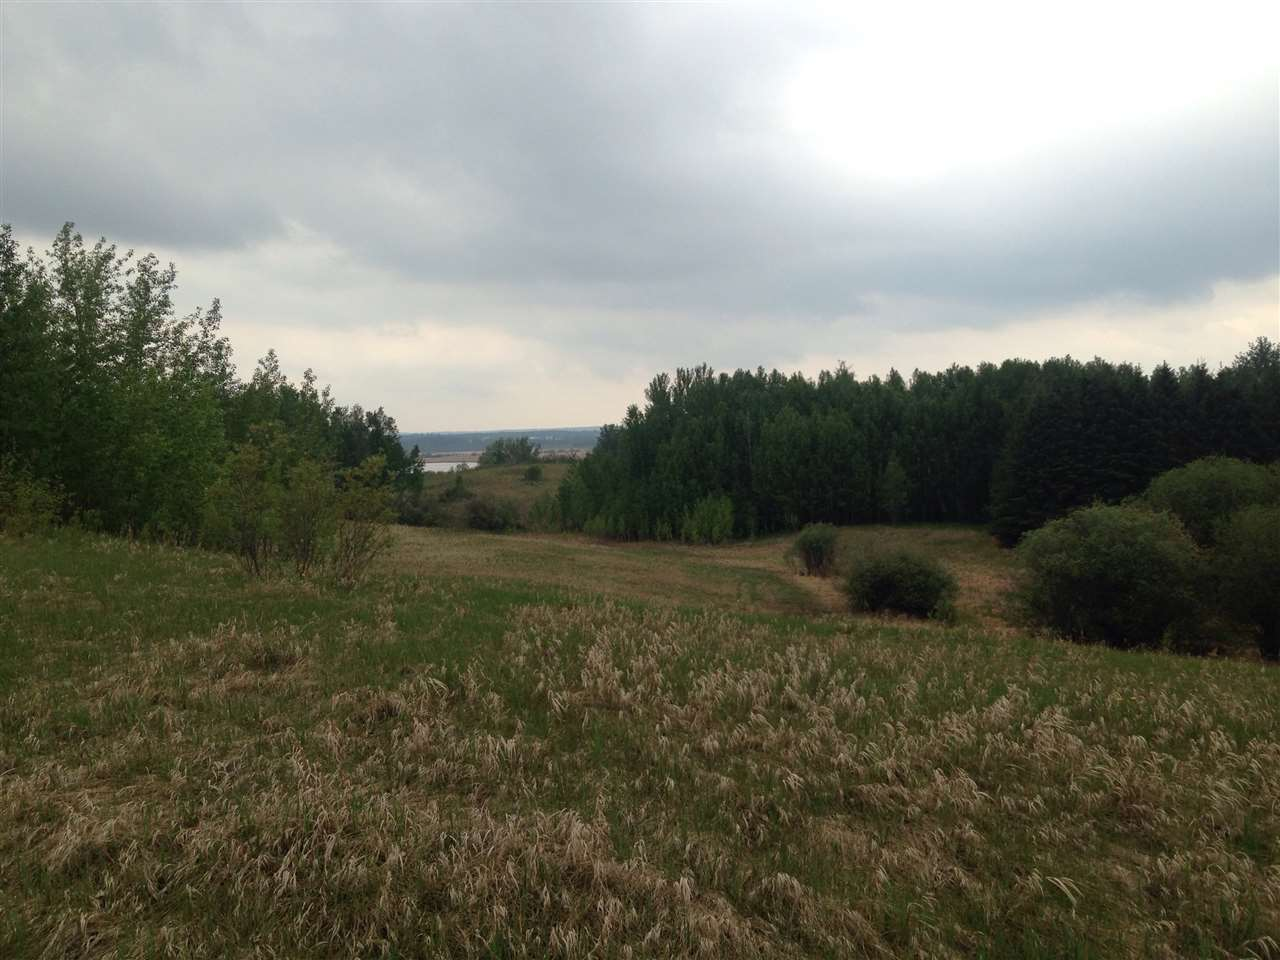 Main Photo: 9 52510 RGE RD 25: Rural Parkland County Rural Land/Vacant Lot for sale : MLS® # E4070121